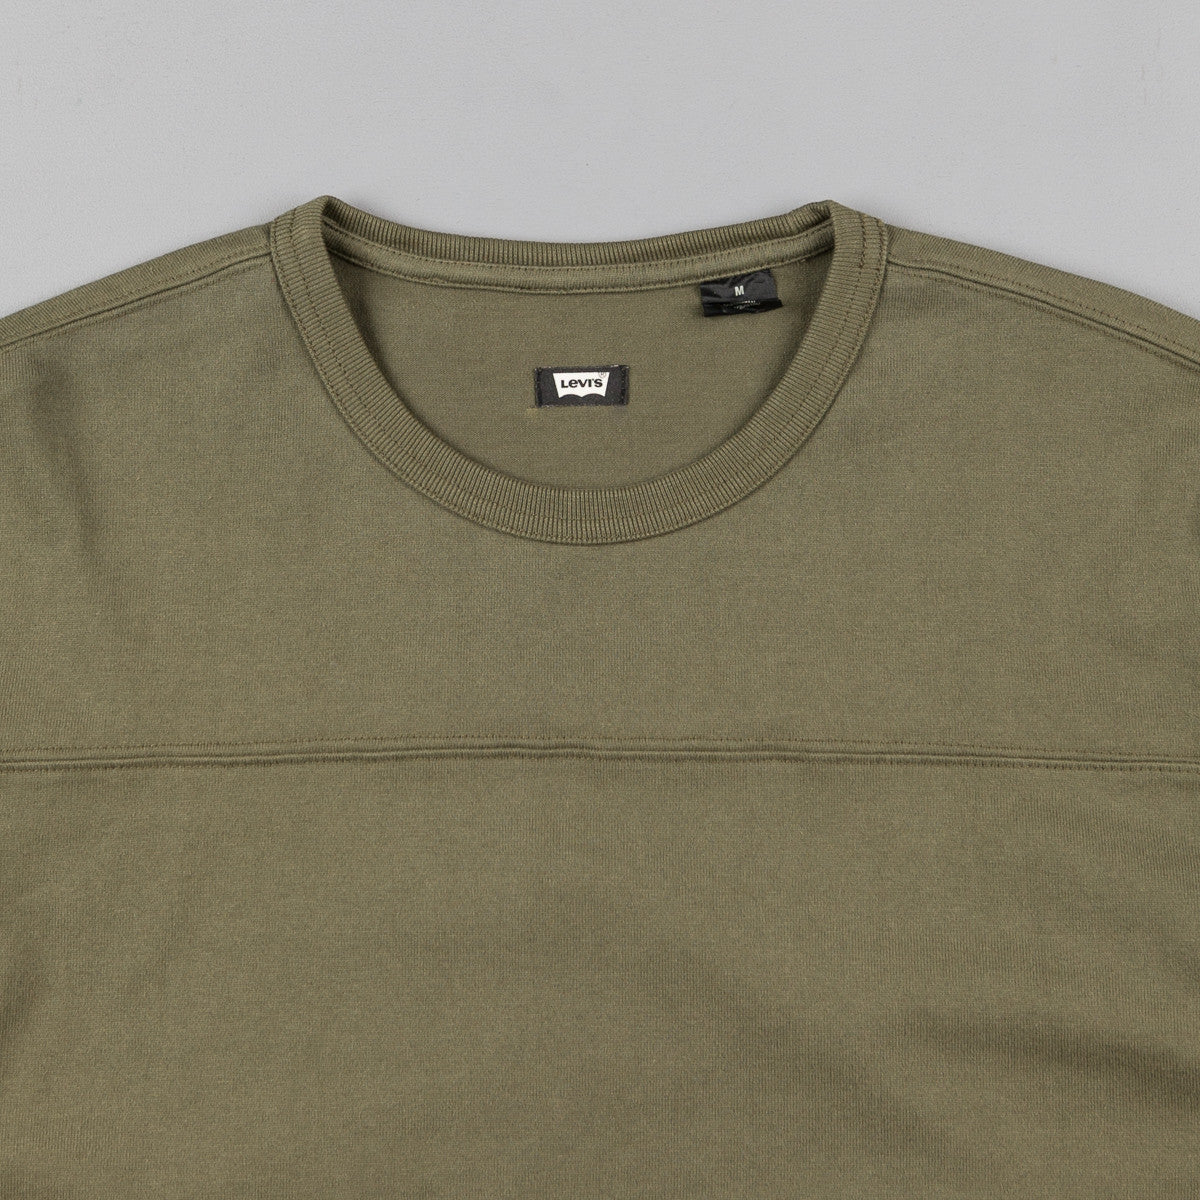 Levi's® Skate Long Sleeve Football Shirt - Ivy Green